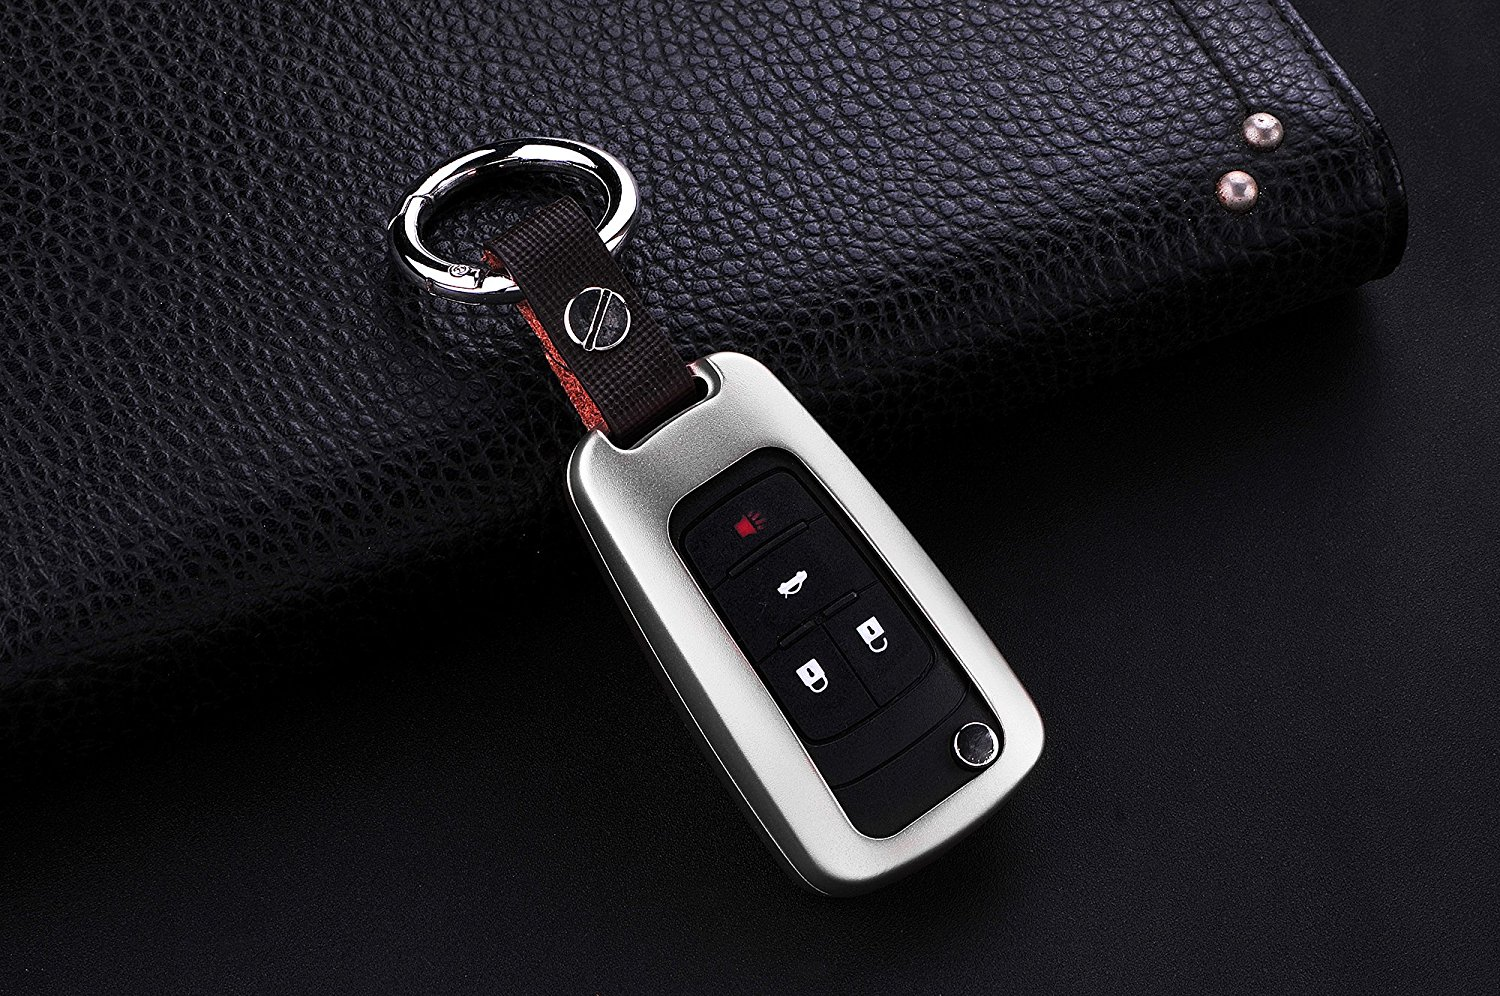 M.JVisun Car Remote Keyless Entry Key Case Cover Fob Skin for Buick Encore Excelle GL8 Regal Excelle XT GT 2 / 3 / 4 / 5 Buttons , Premium Aircraft Aluminum + Genuine Leather With Key Chain - Silver